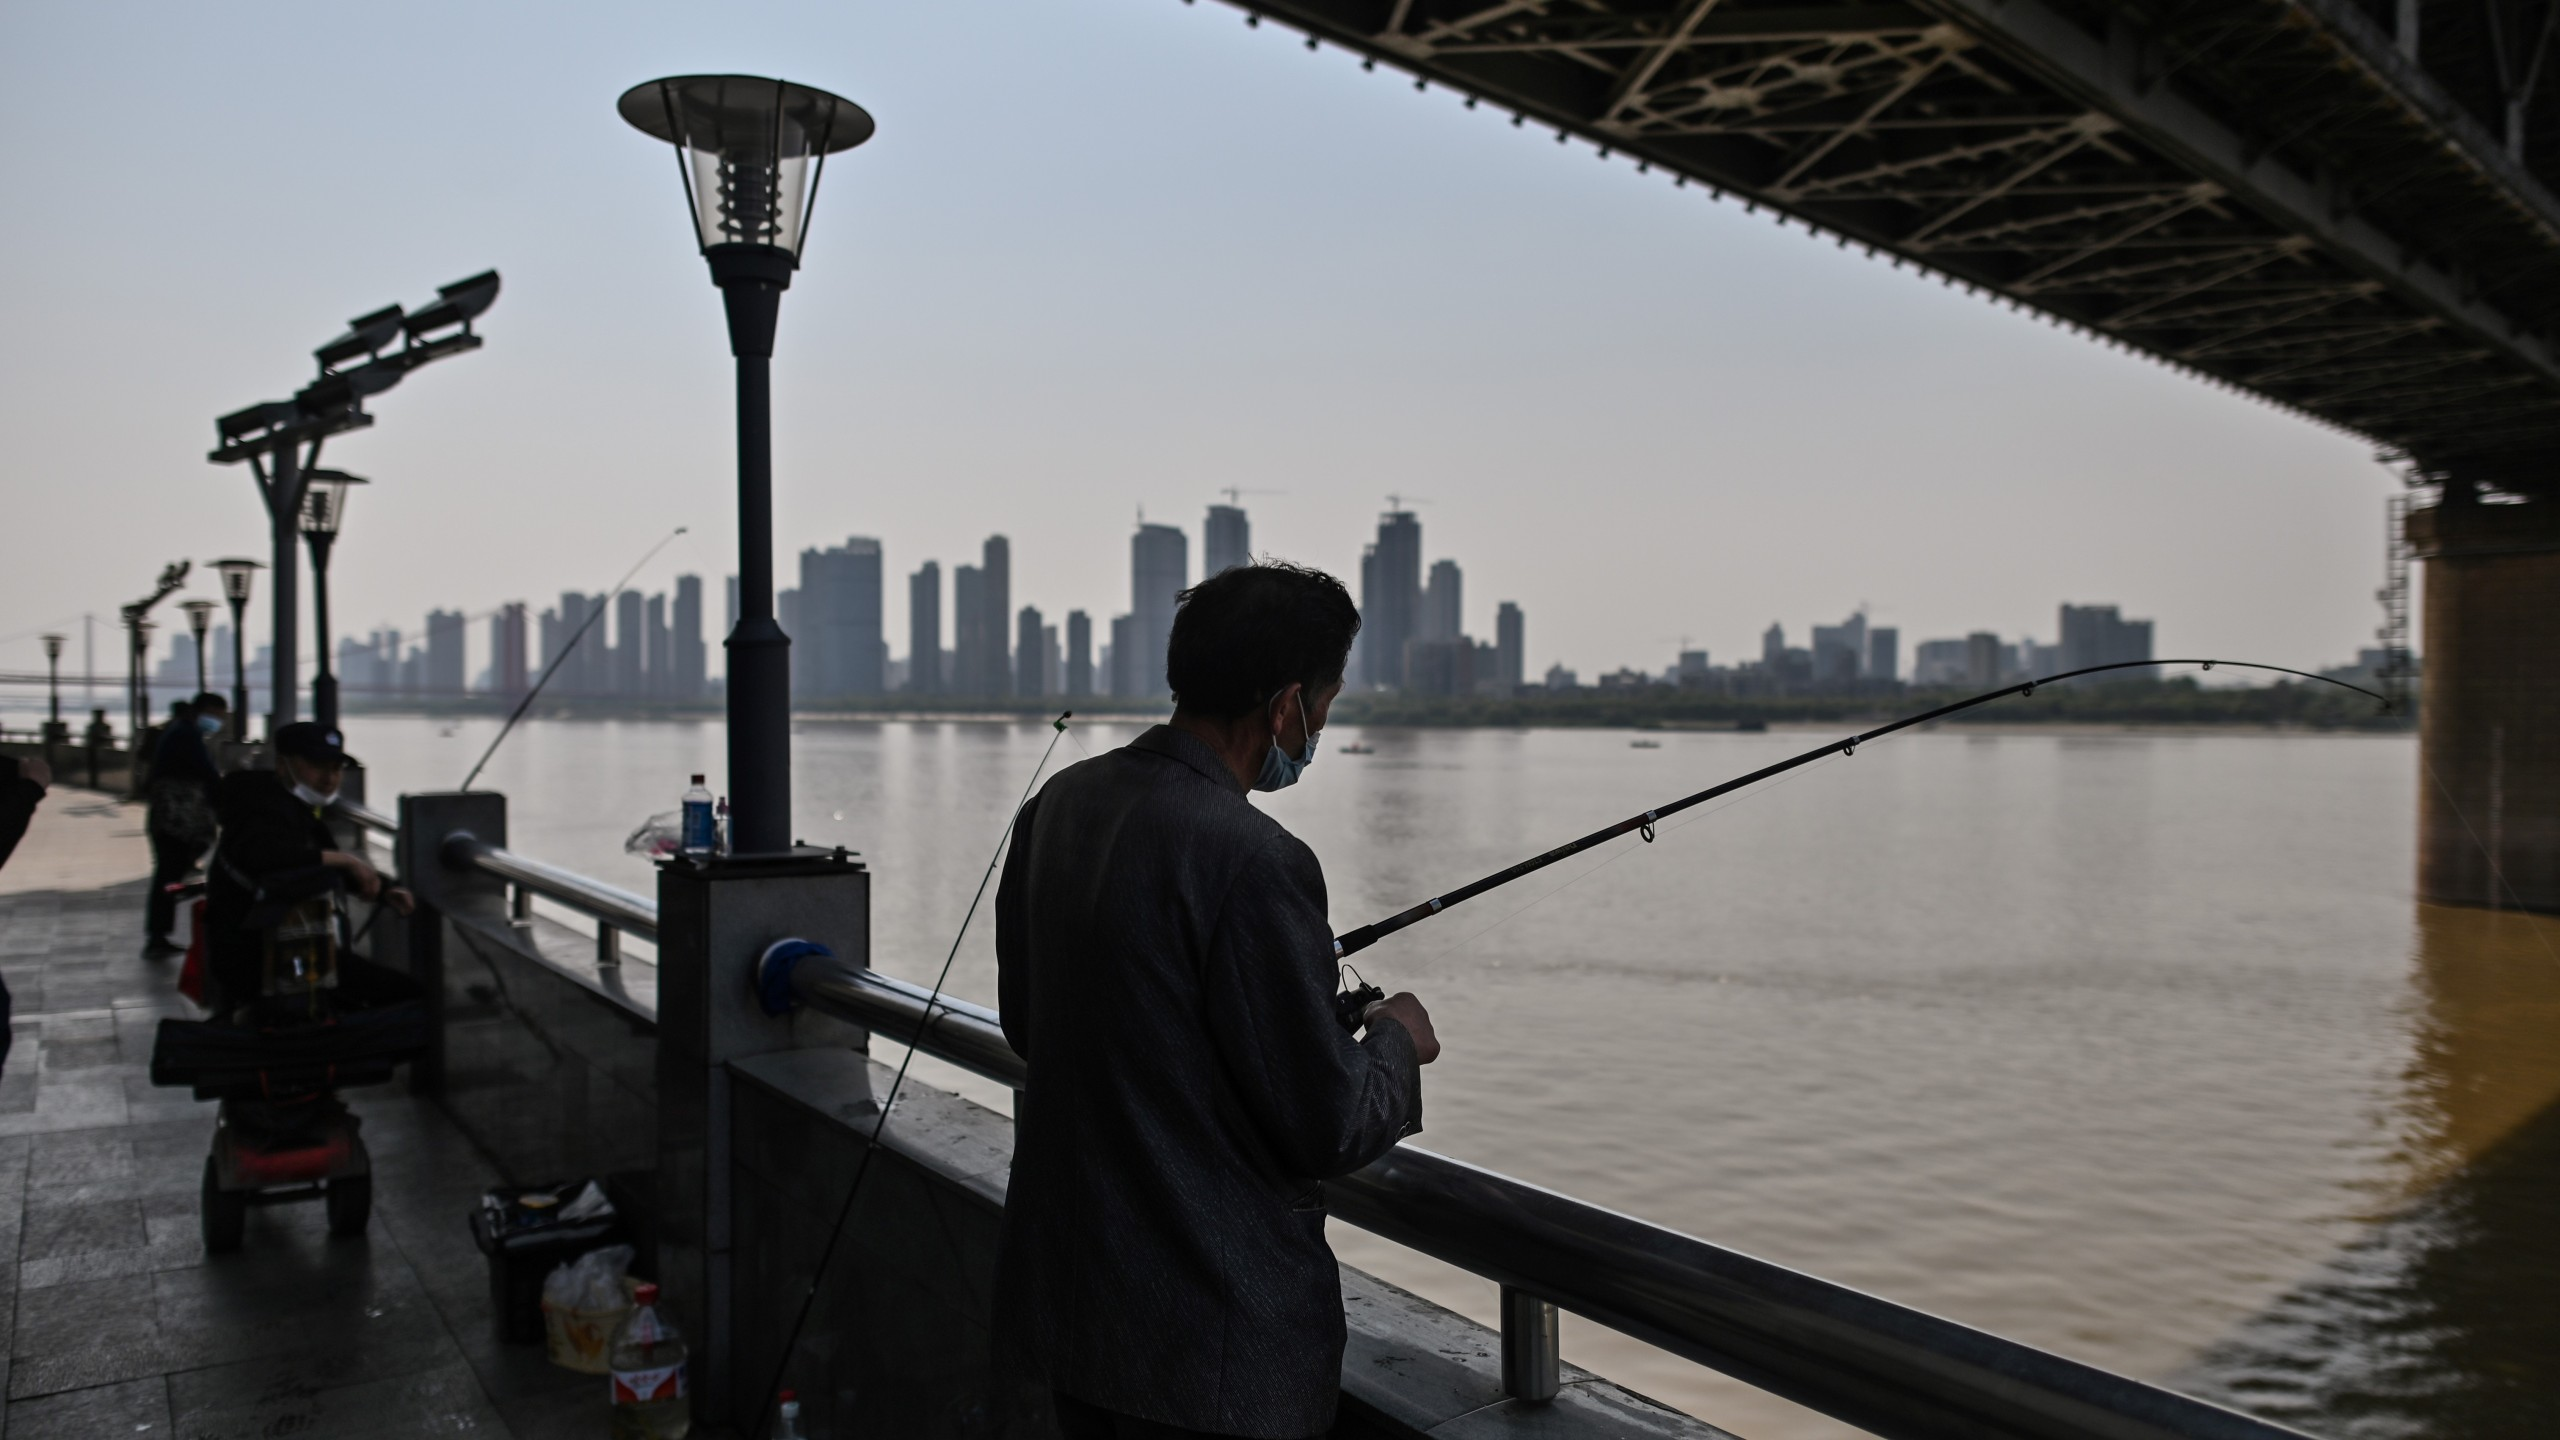 A man wearing a face mask fishes next to Wuhan Bridge in Yangtze River in Wuhan, China, on April 9, 2020. (HECTOR RETAMAL/AFP via Getty Images)